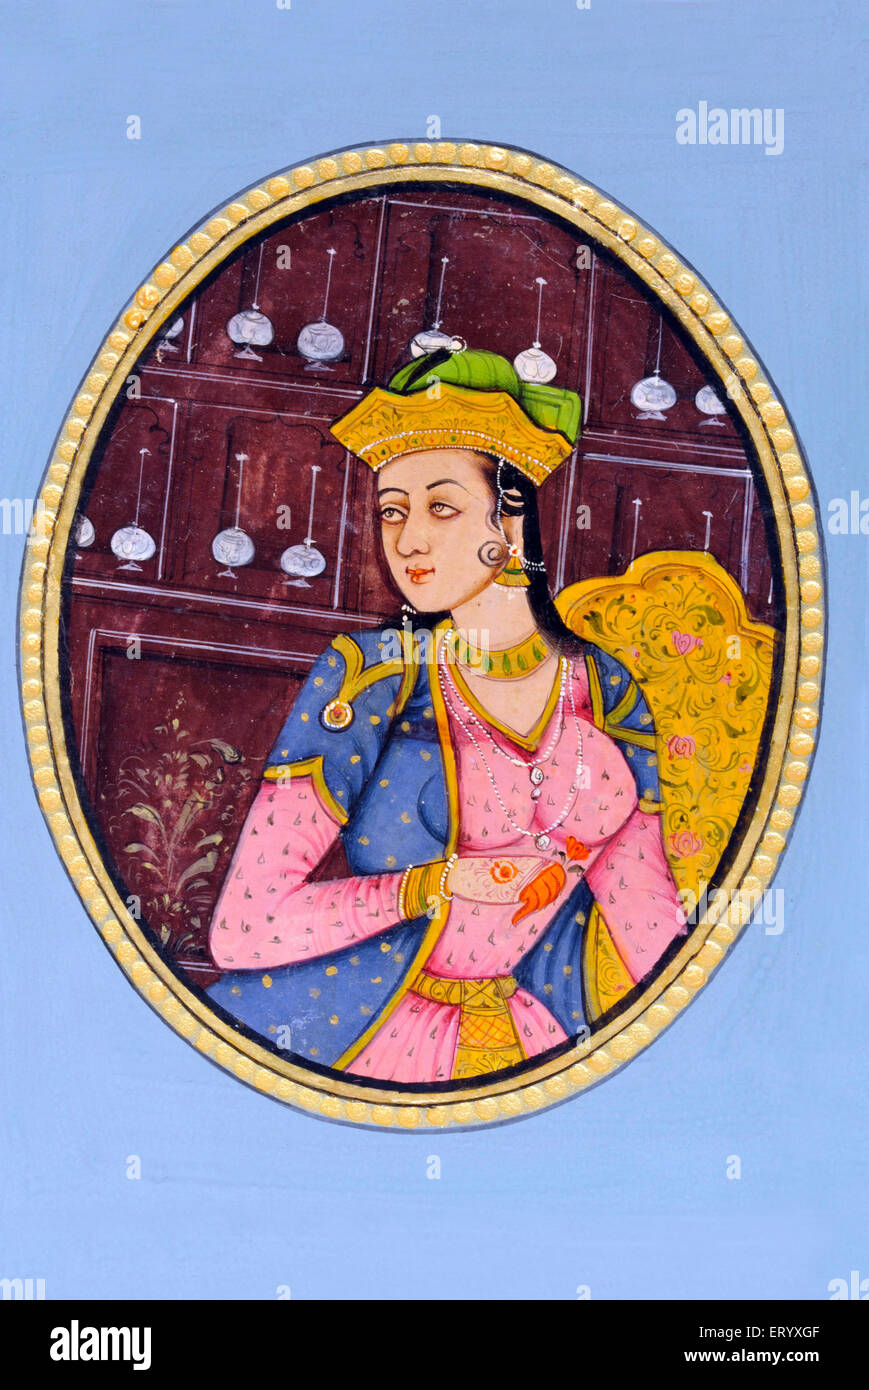 Miniature Painting of Queen Mumtaz Mahal India Asia - Stock Image